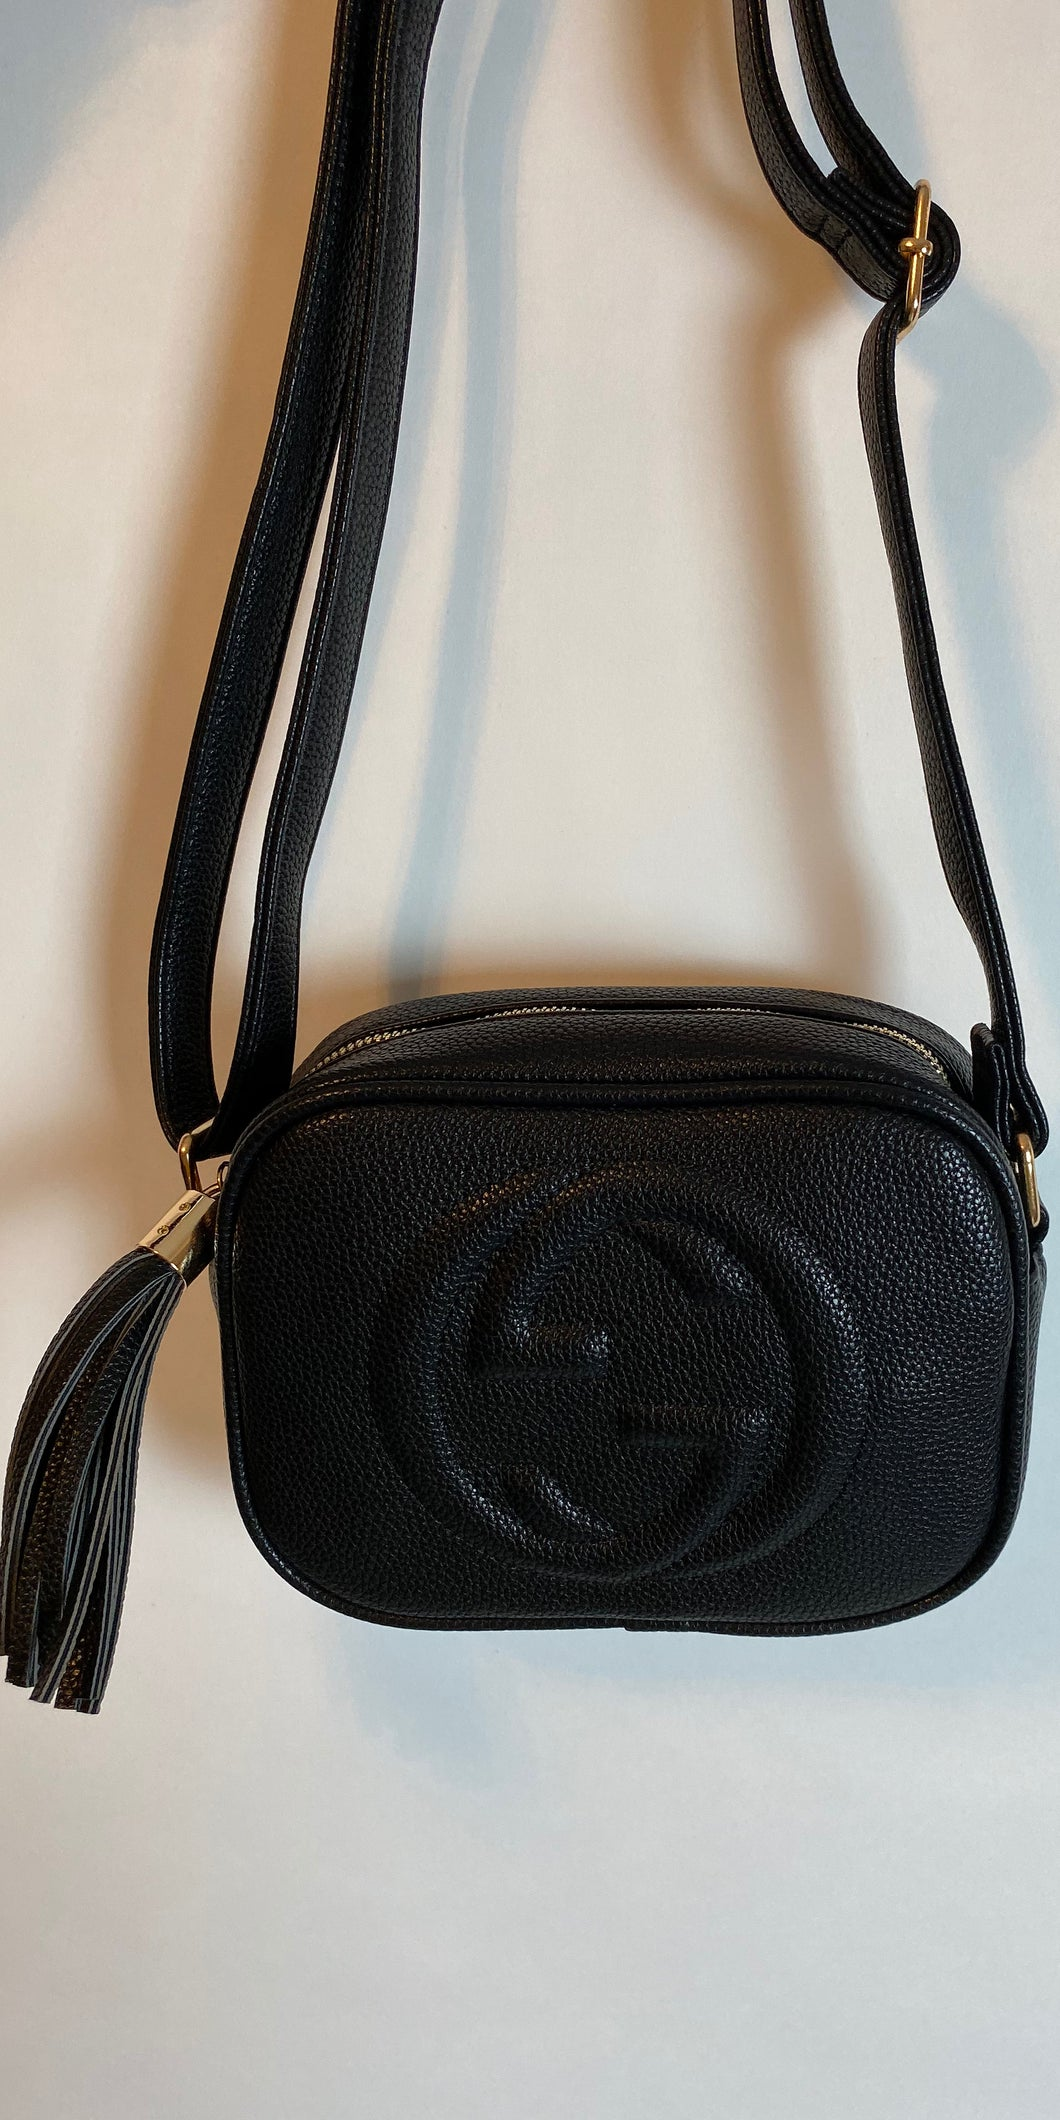 Black Gucci Inspired Cross Body Bag - chichappensboutique